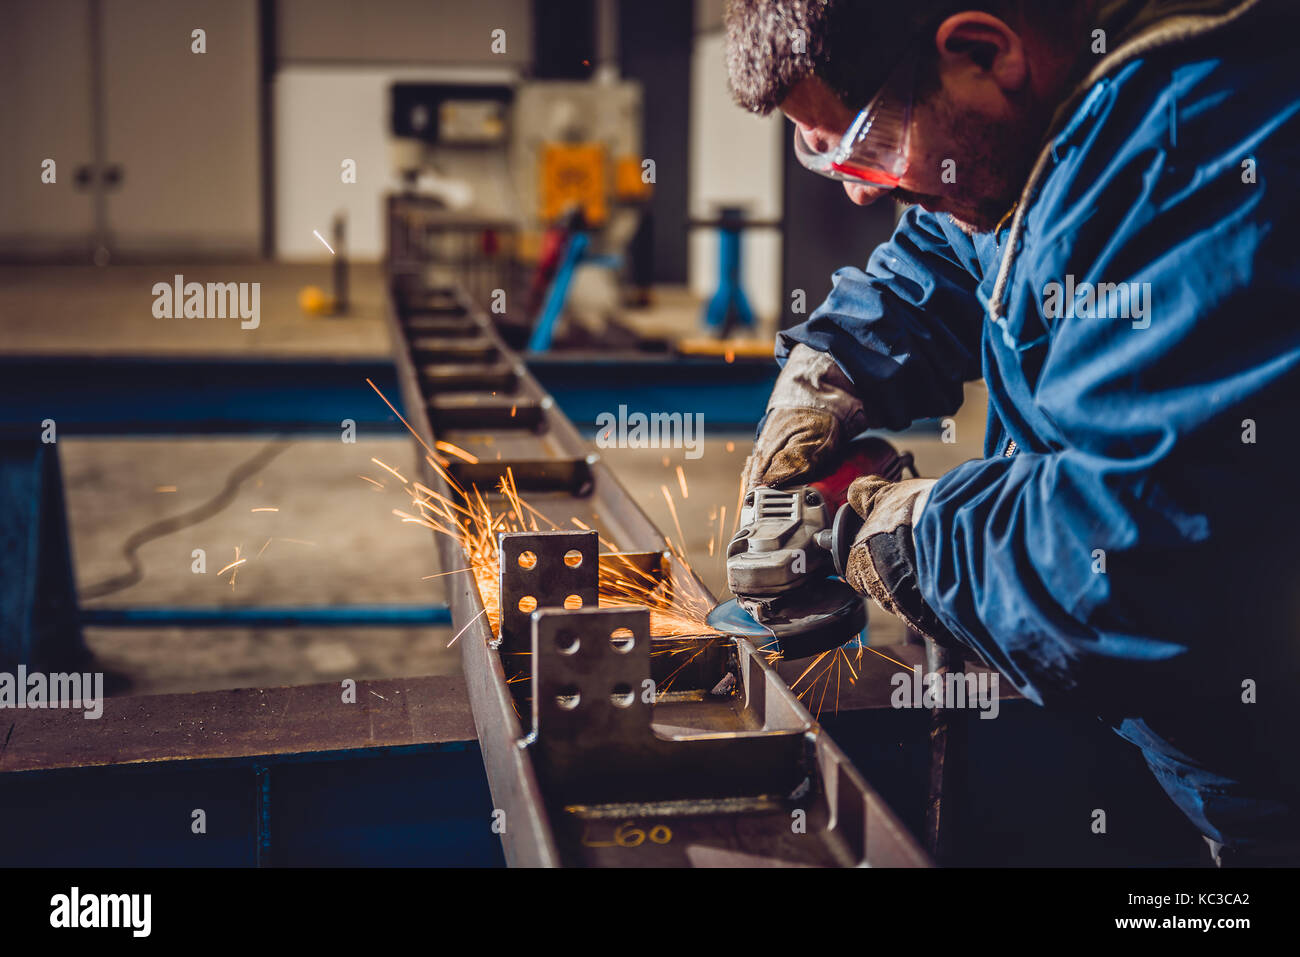 Worker Using Angle Grinder in Factory and throwing sparks Stock Photo